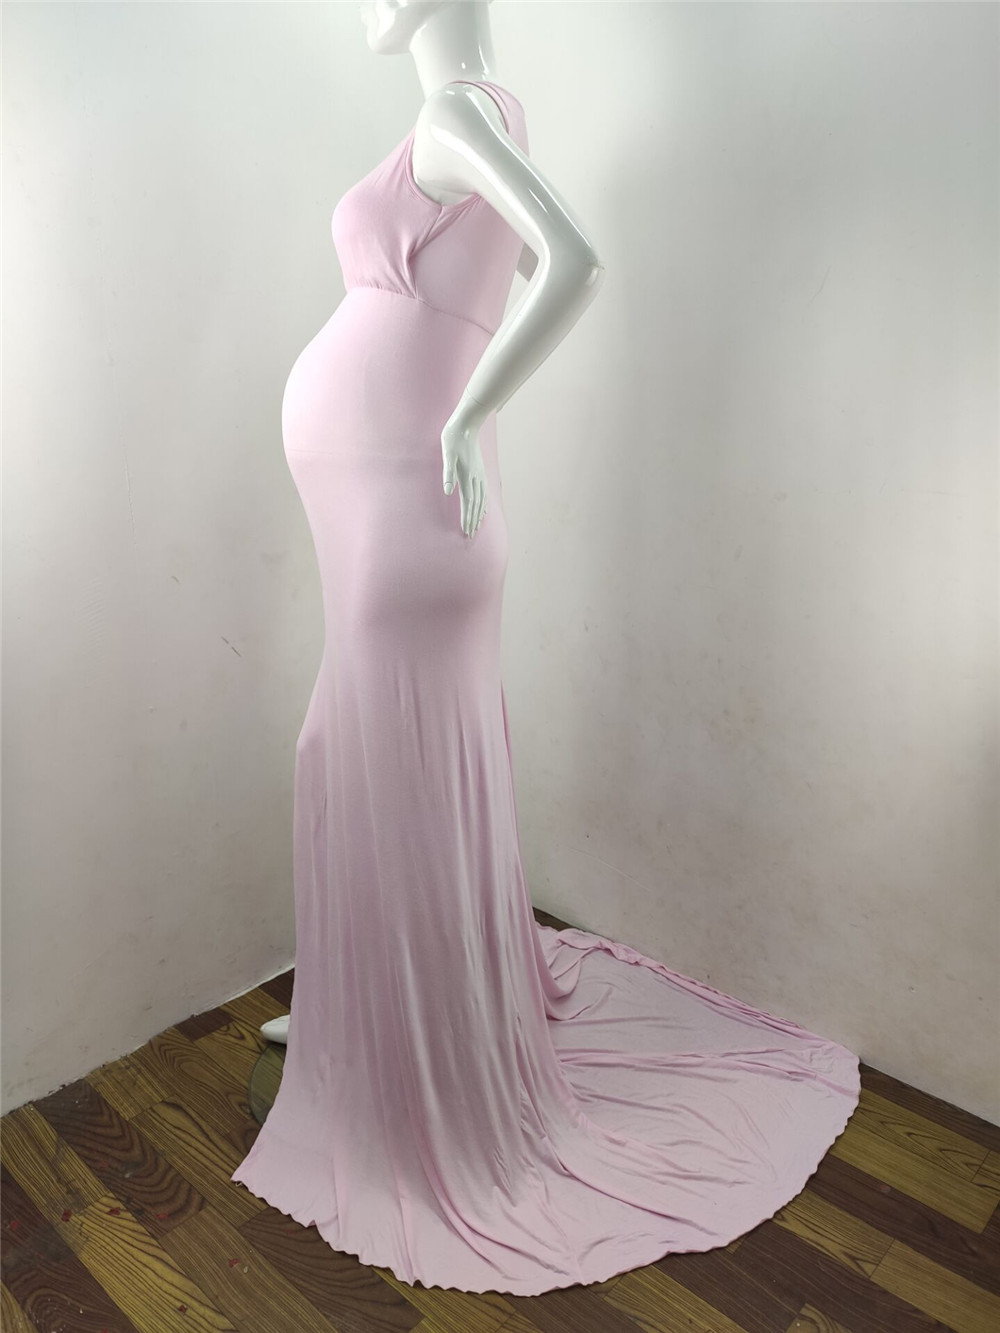 New Sleeveless maternity dresses maxi gown photo prop sexy pregnancy photography dress for pregnant women long shoot Dress 2020 (8)